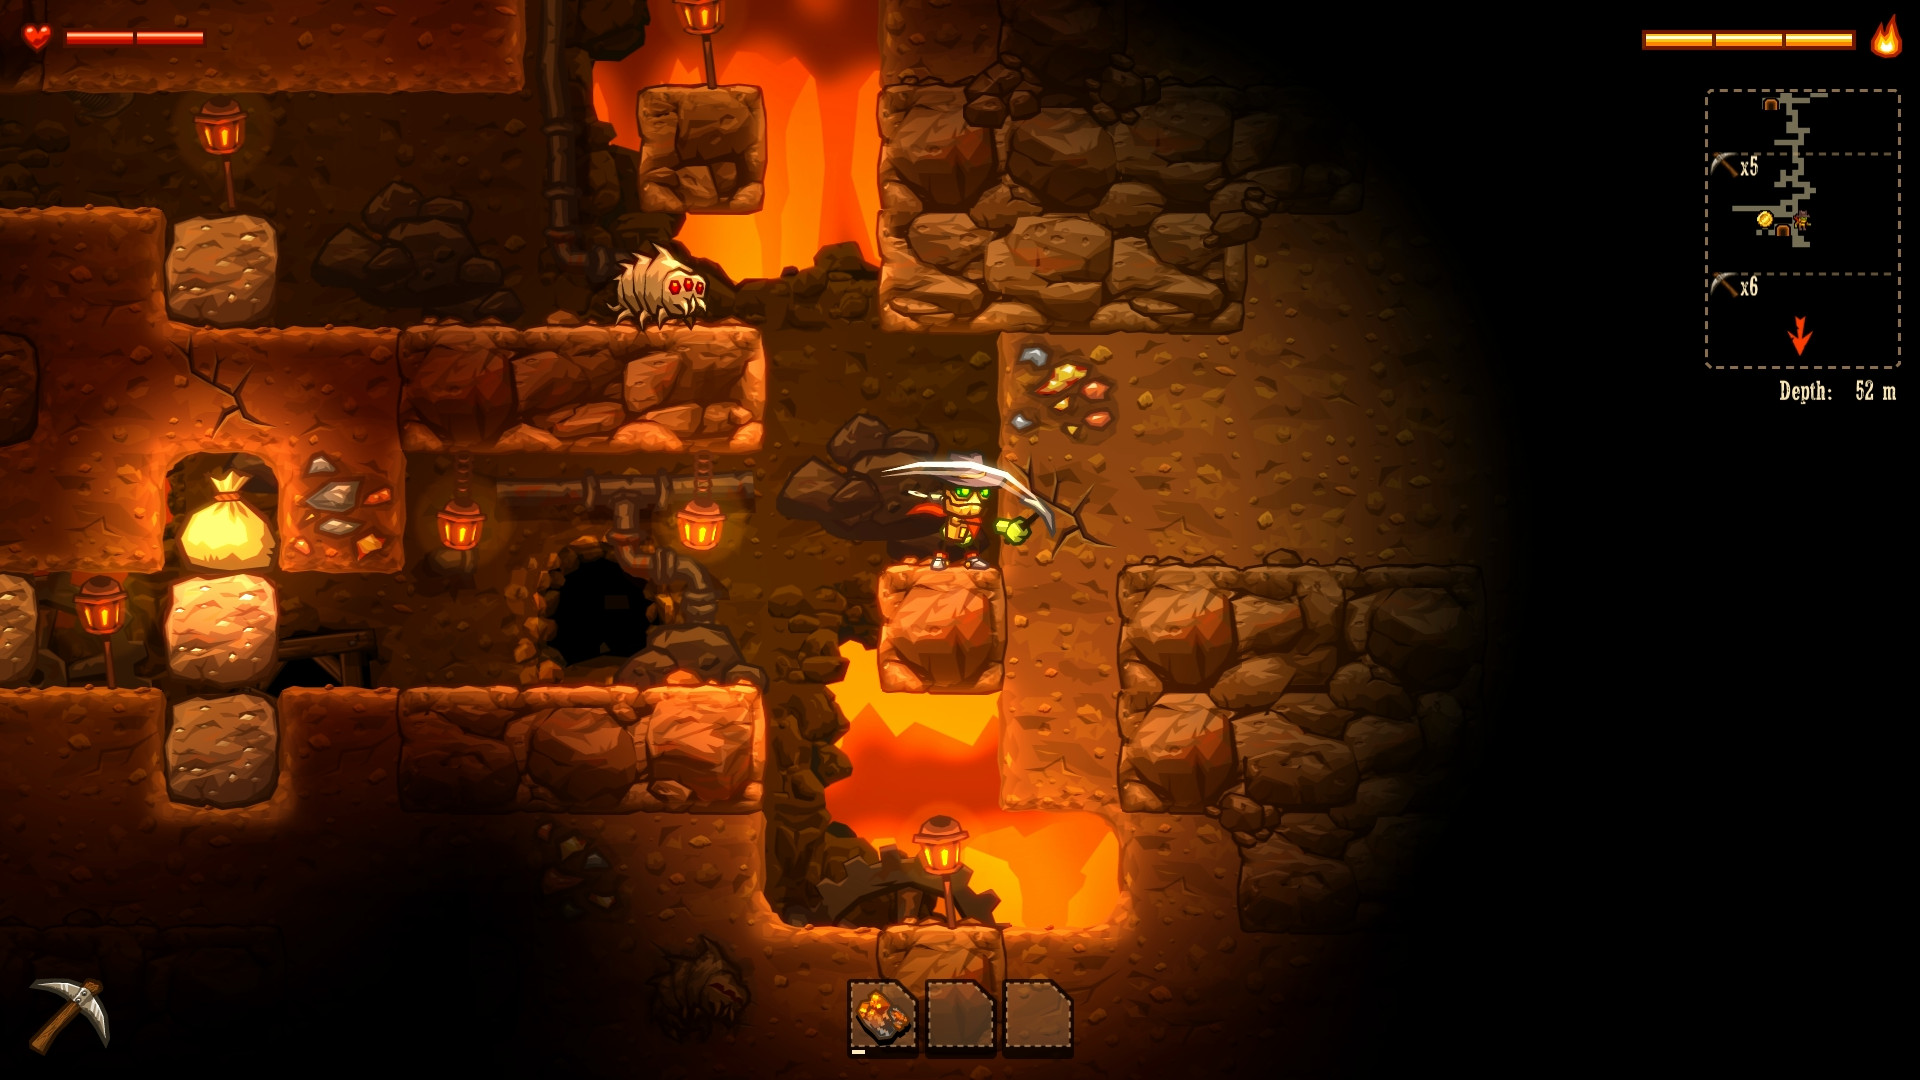 SteamWorld Dig was an unexpected hit for Image & Form.